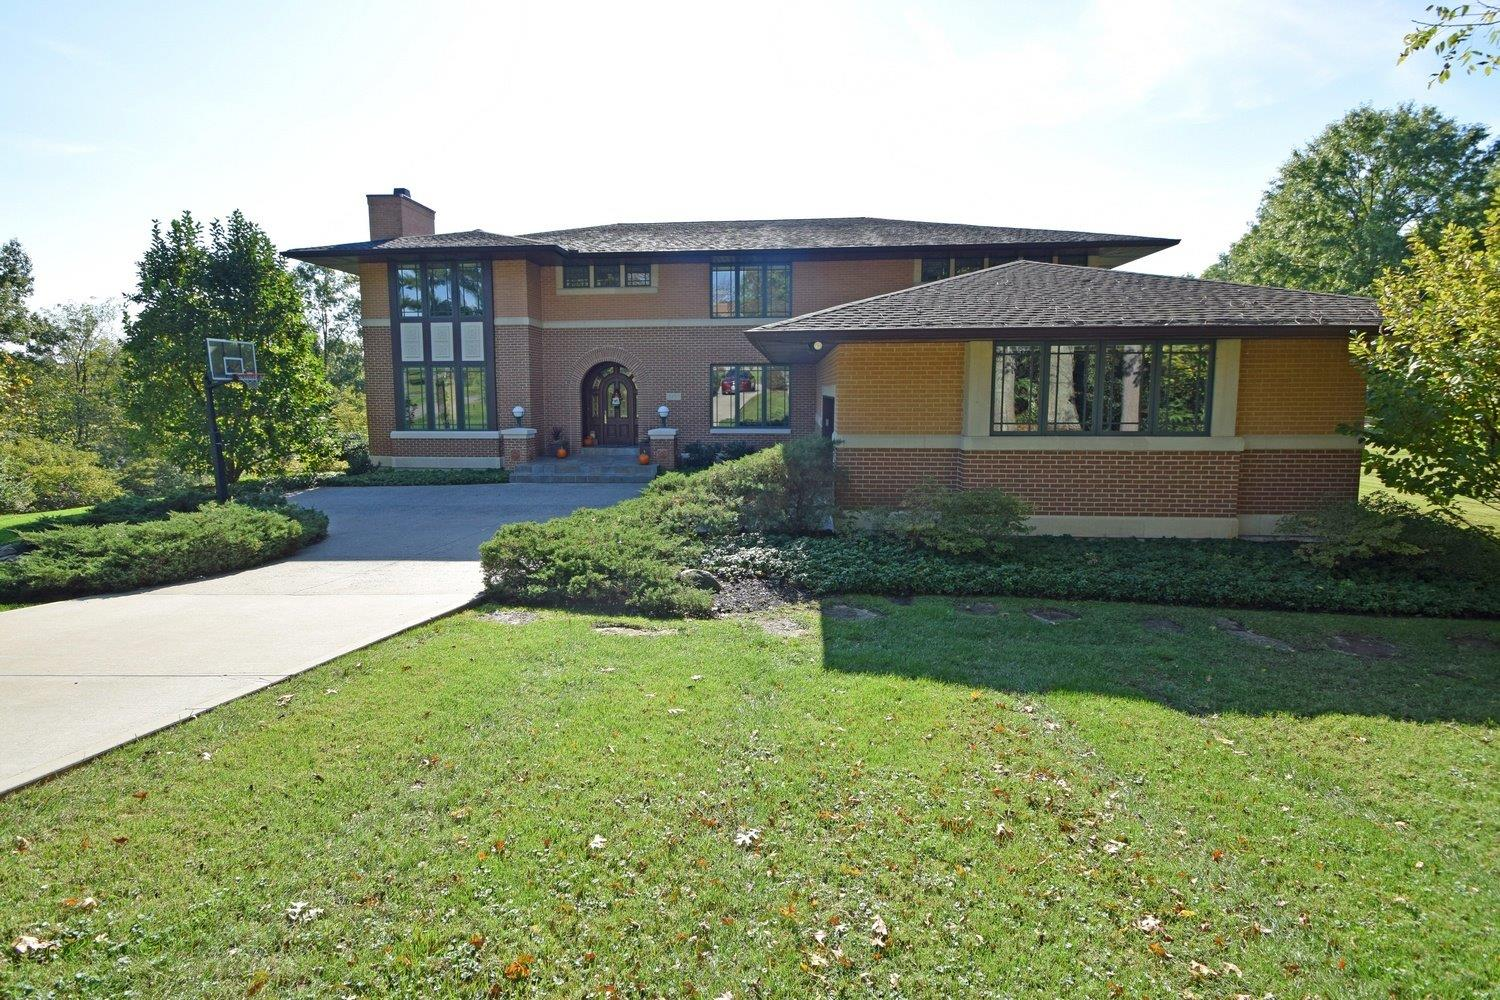 ABSOLUTE GEM! Frank Lloyd Wright Inspired w/River View! Custom Built w/Impeccable Attention to Detail! Dramatic & Tasteful! Open Floor Plan w/Two Story Great Room! Beautiful Kitchen! Sprawling LL w/Large Family Room, 2 additional Bedrooms, Full Bath, Workout Room & Walkout to Professionally Landscaped Yard w/Heated Gunite Pool w/Automatic Cover!